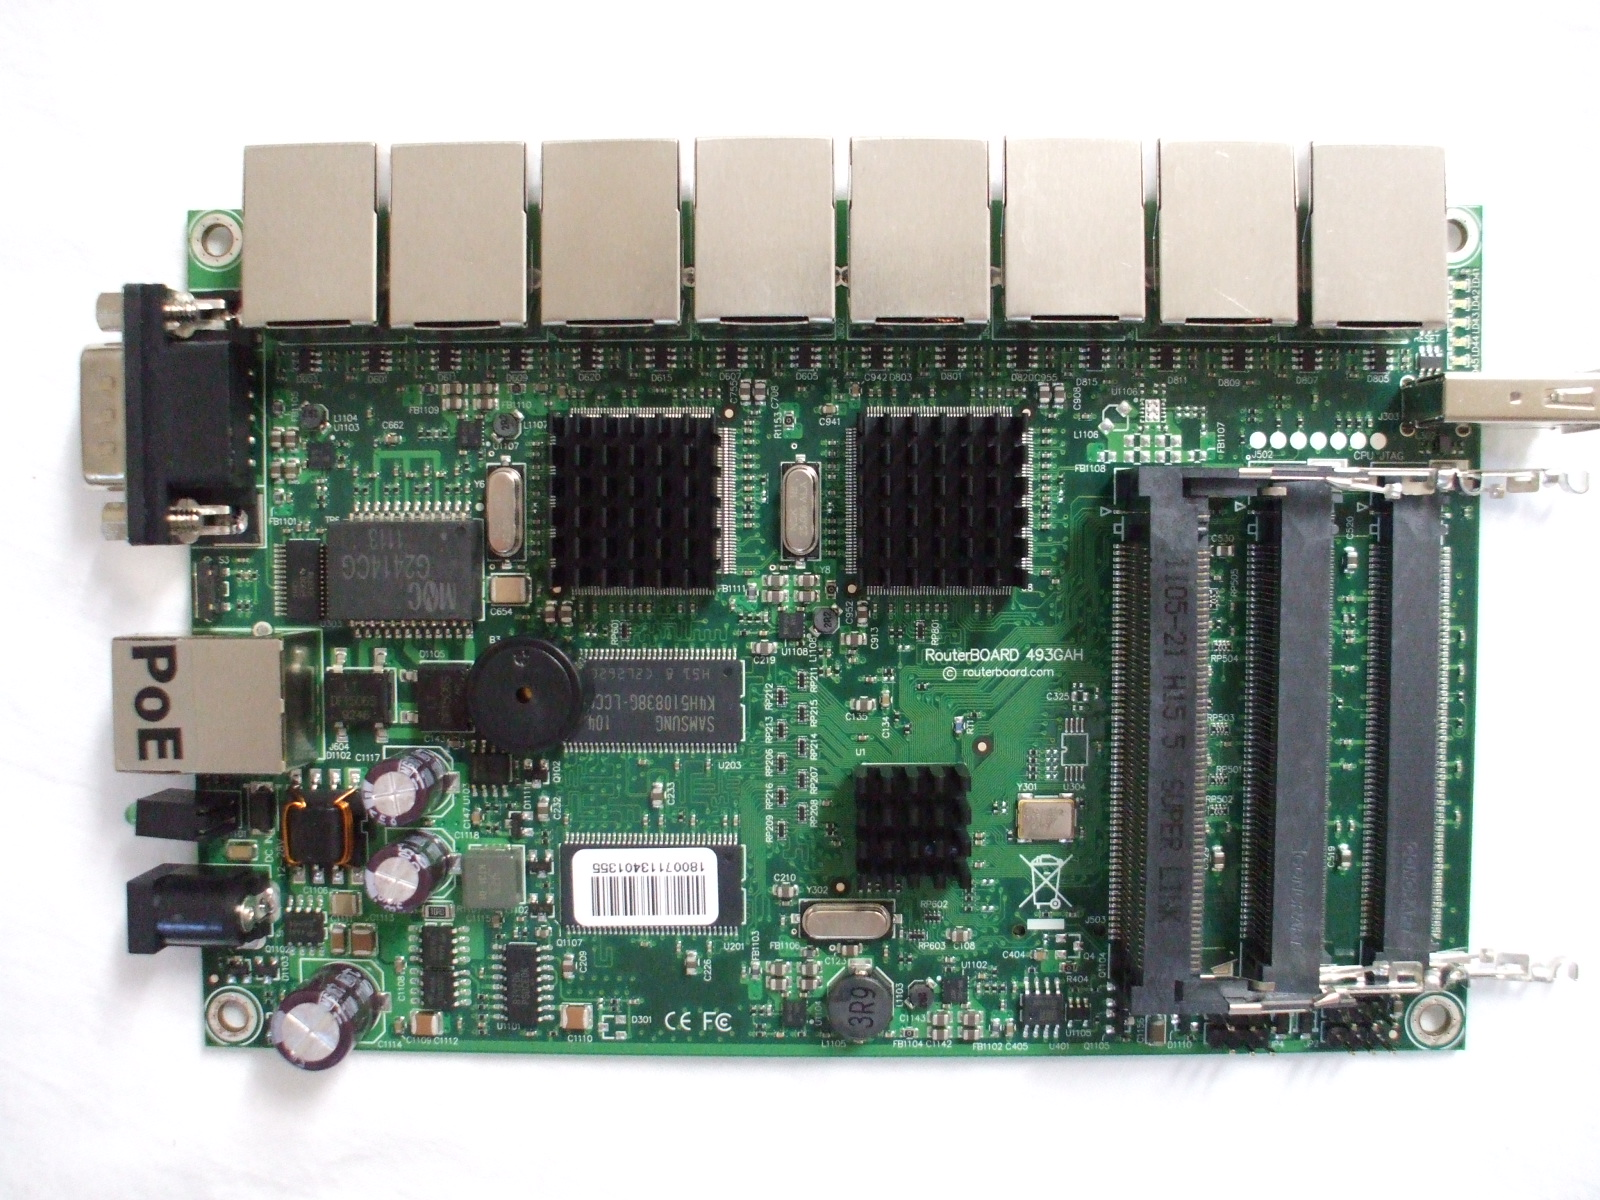 MIKROTIK RB493G ROUTER BOARD DRIVER FOR WINDOWS 8